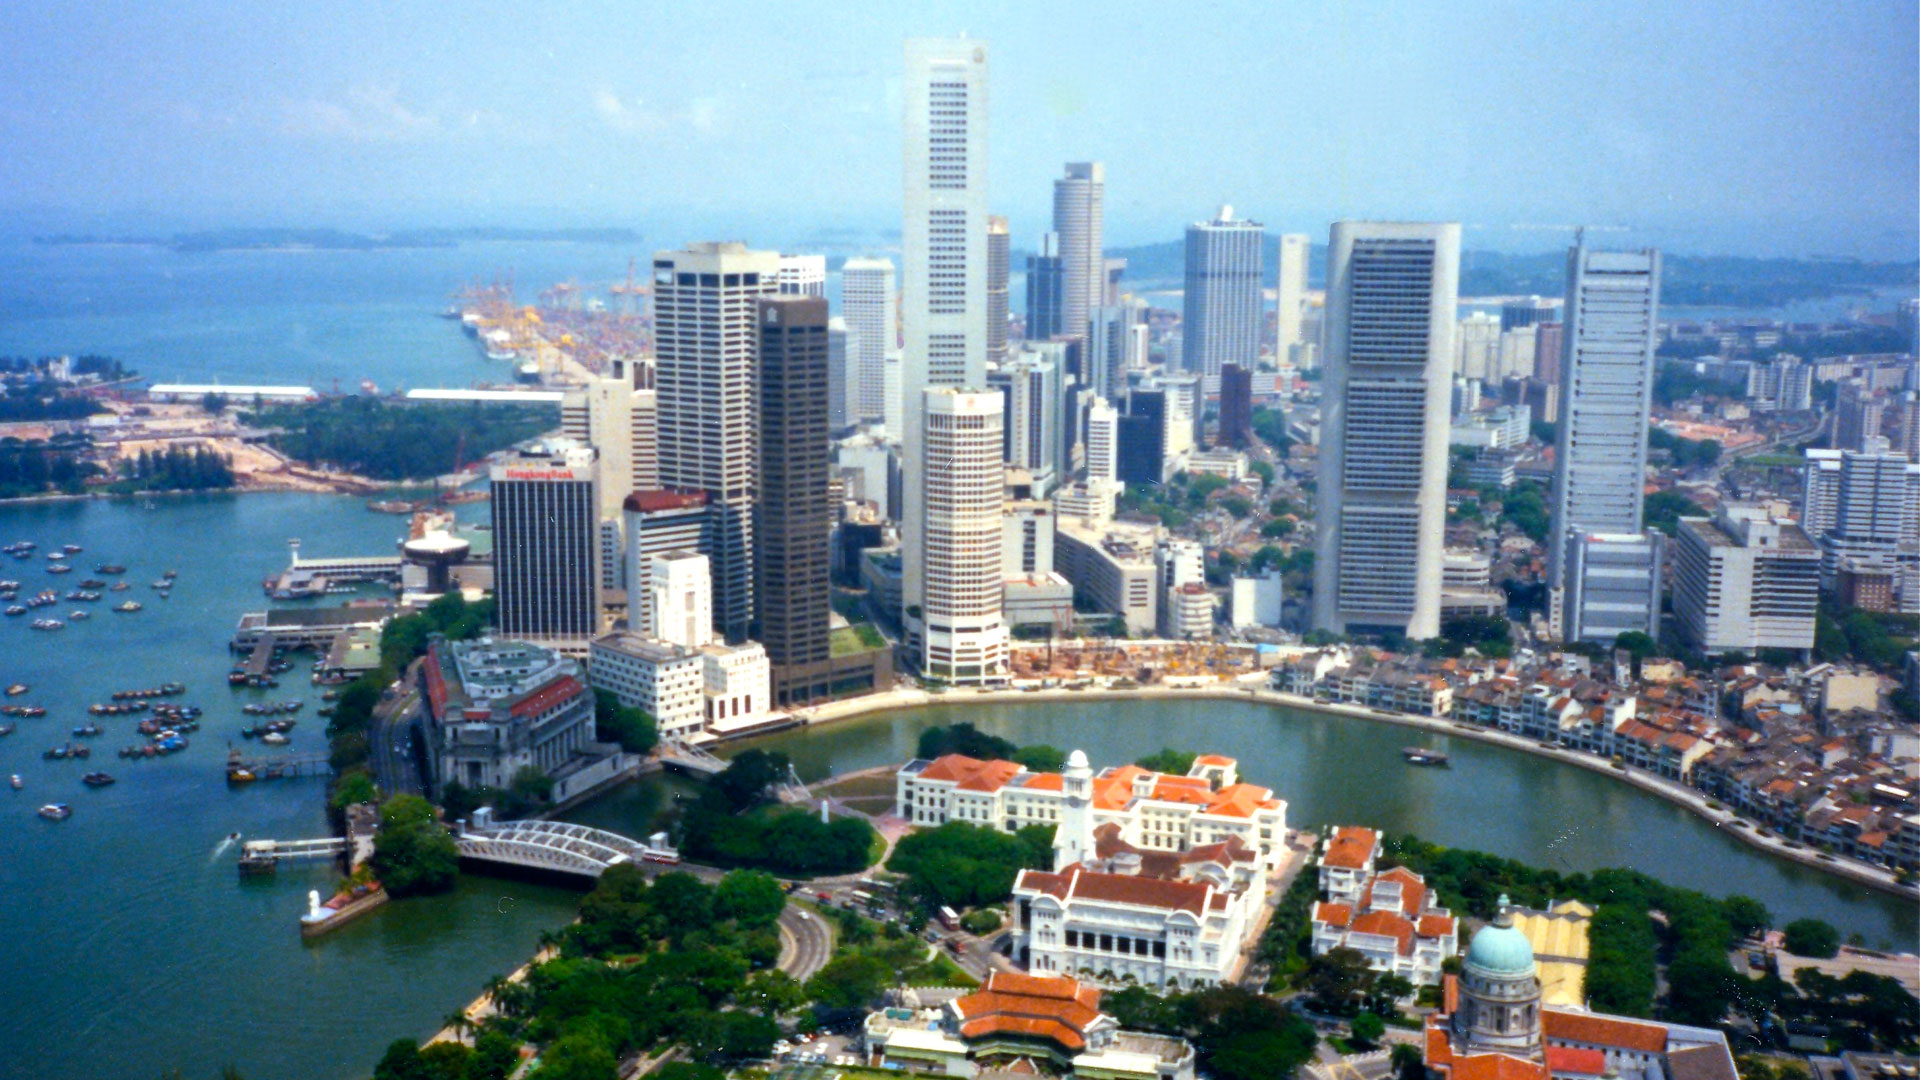 panorama-Merlion-Park-Singapore-tourism-destination-Singapore (1)